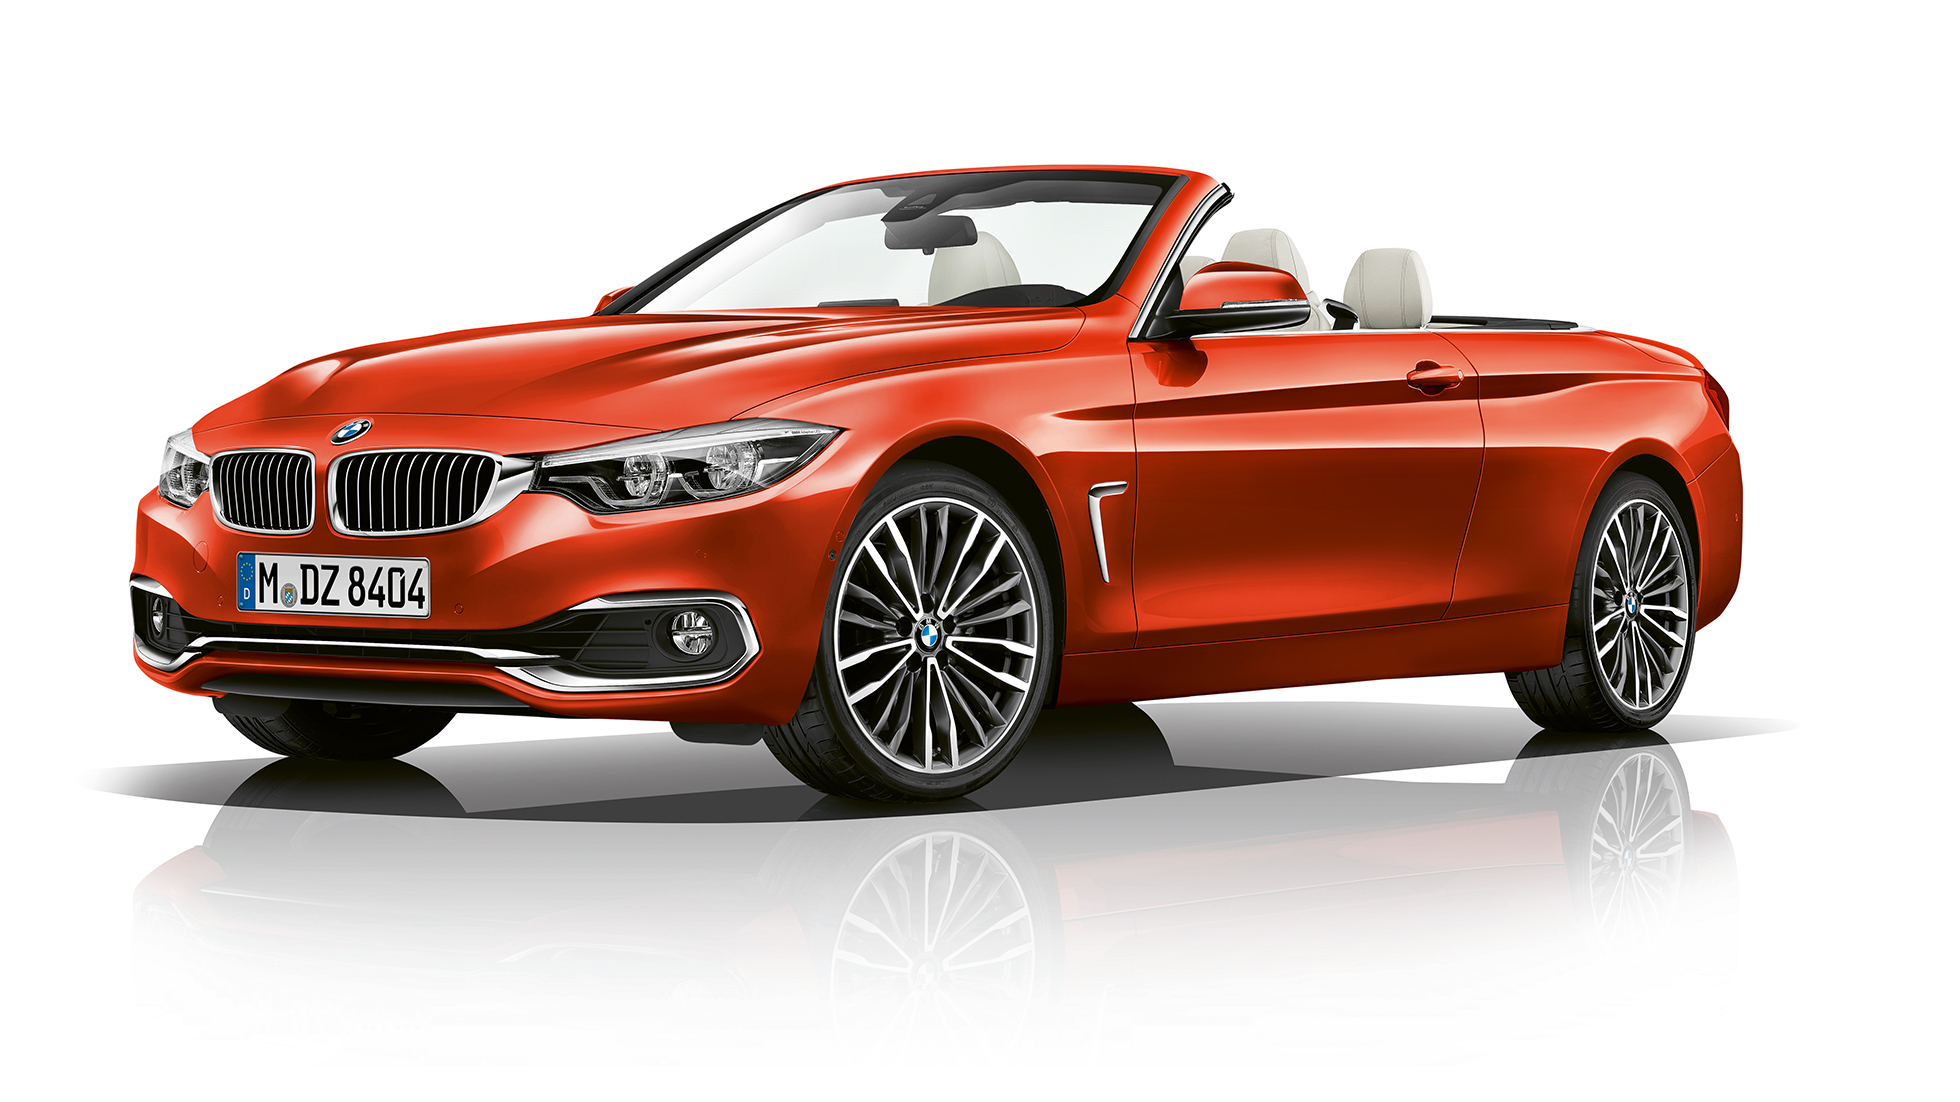 BMW 4 Serie Cabrio, Model Luxury Line driekwart vooraanzicht